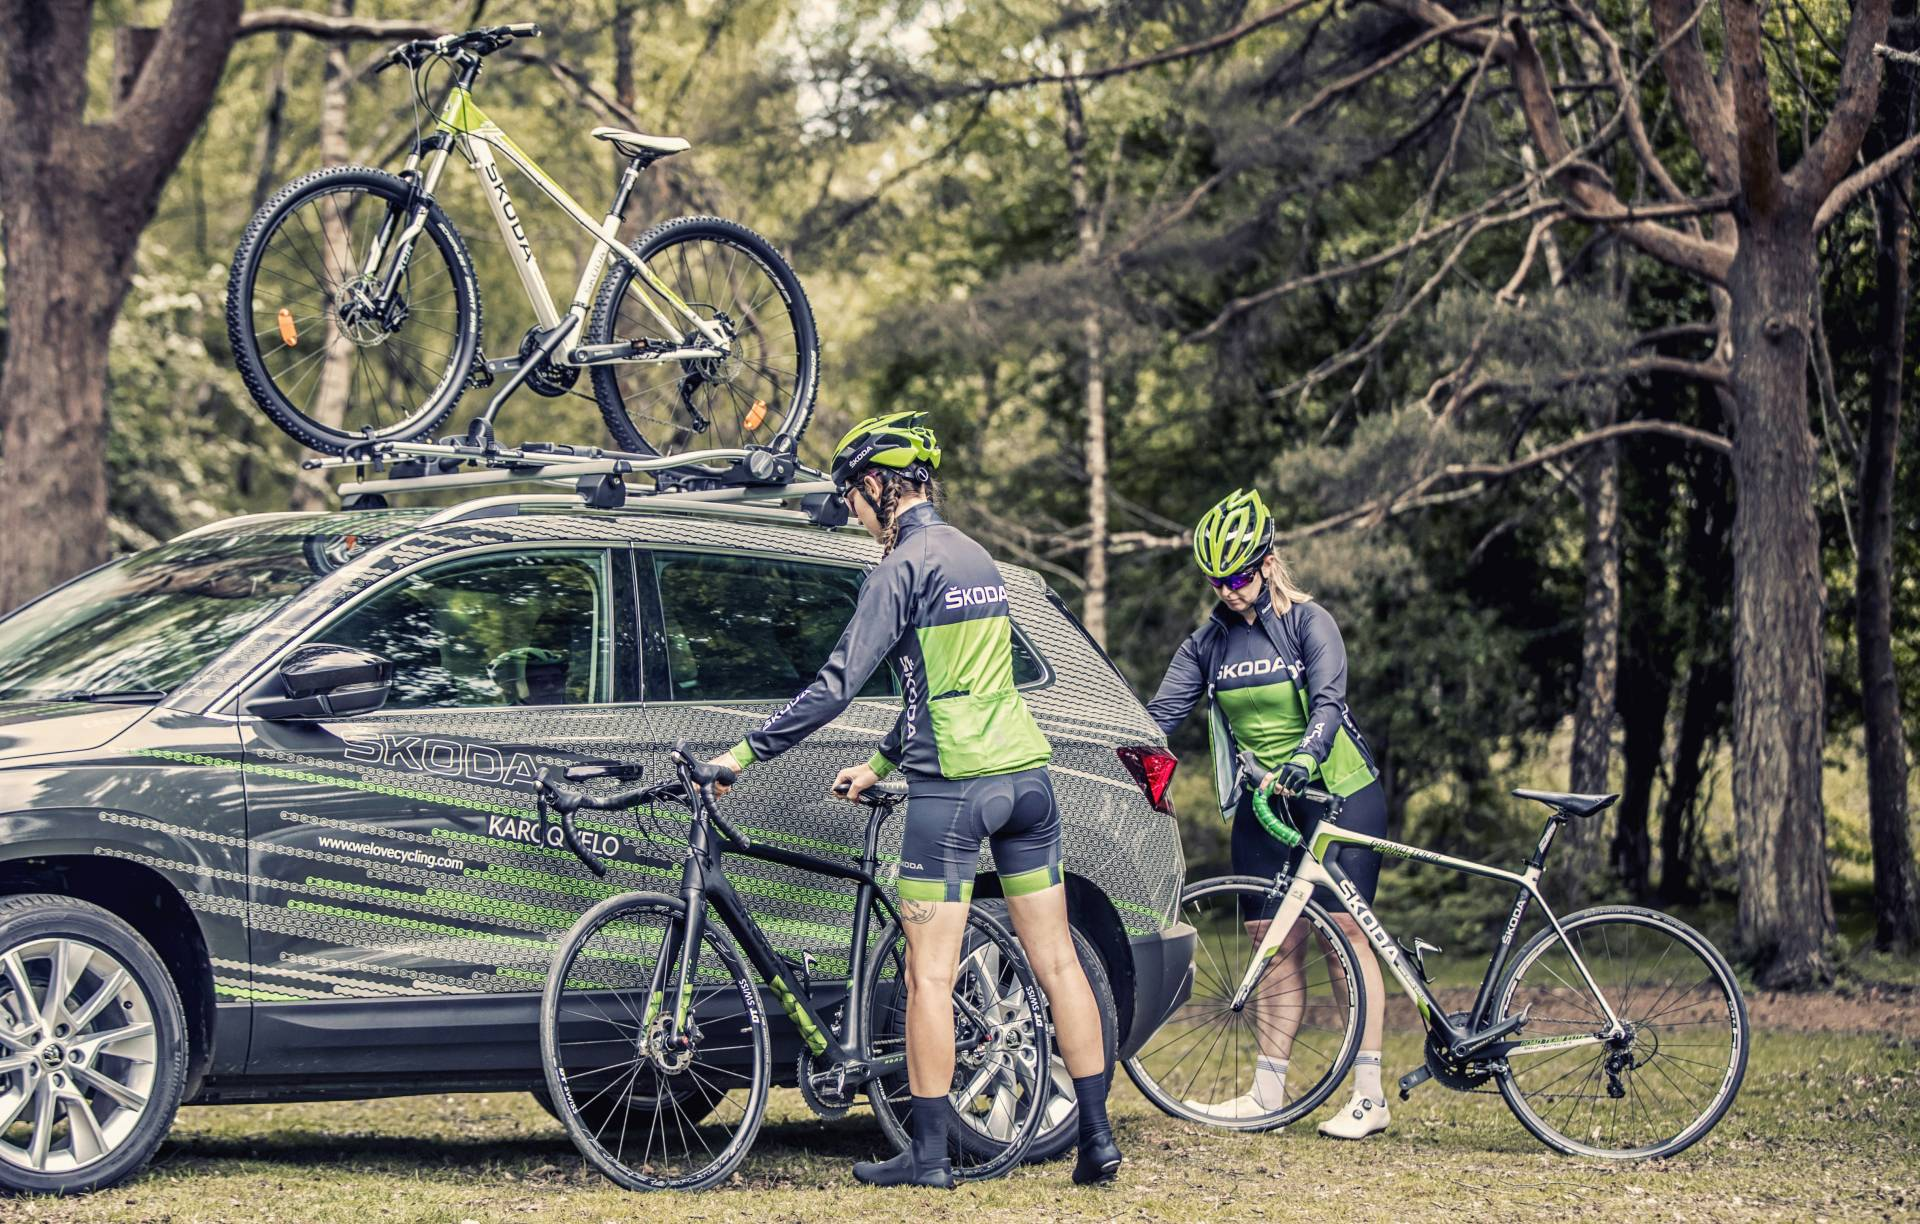 Skoda-Karoq-Velo-one-off-5